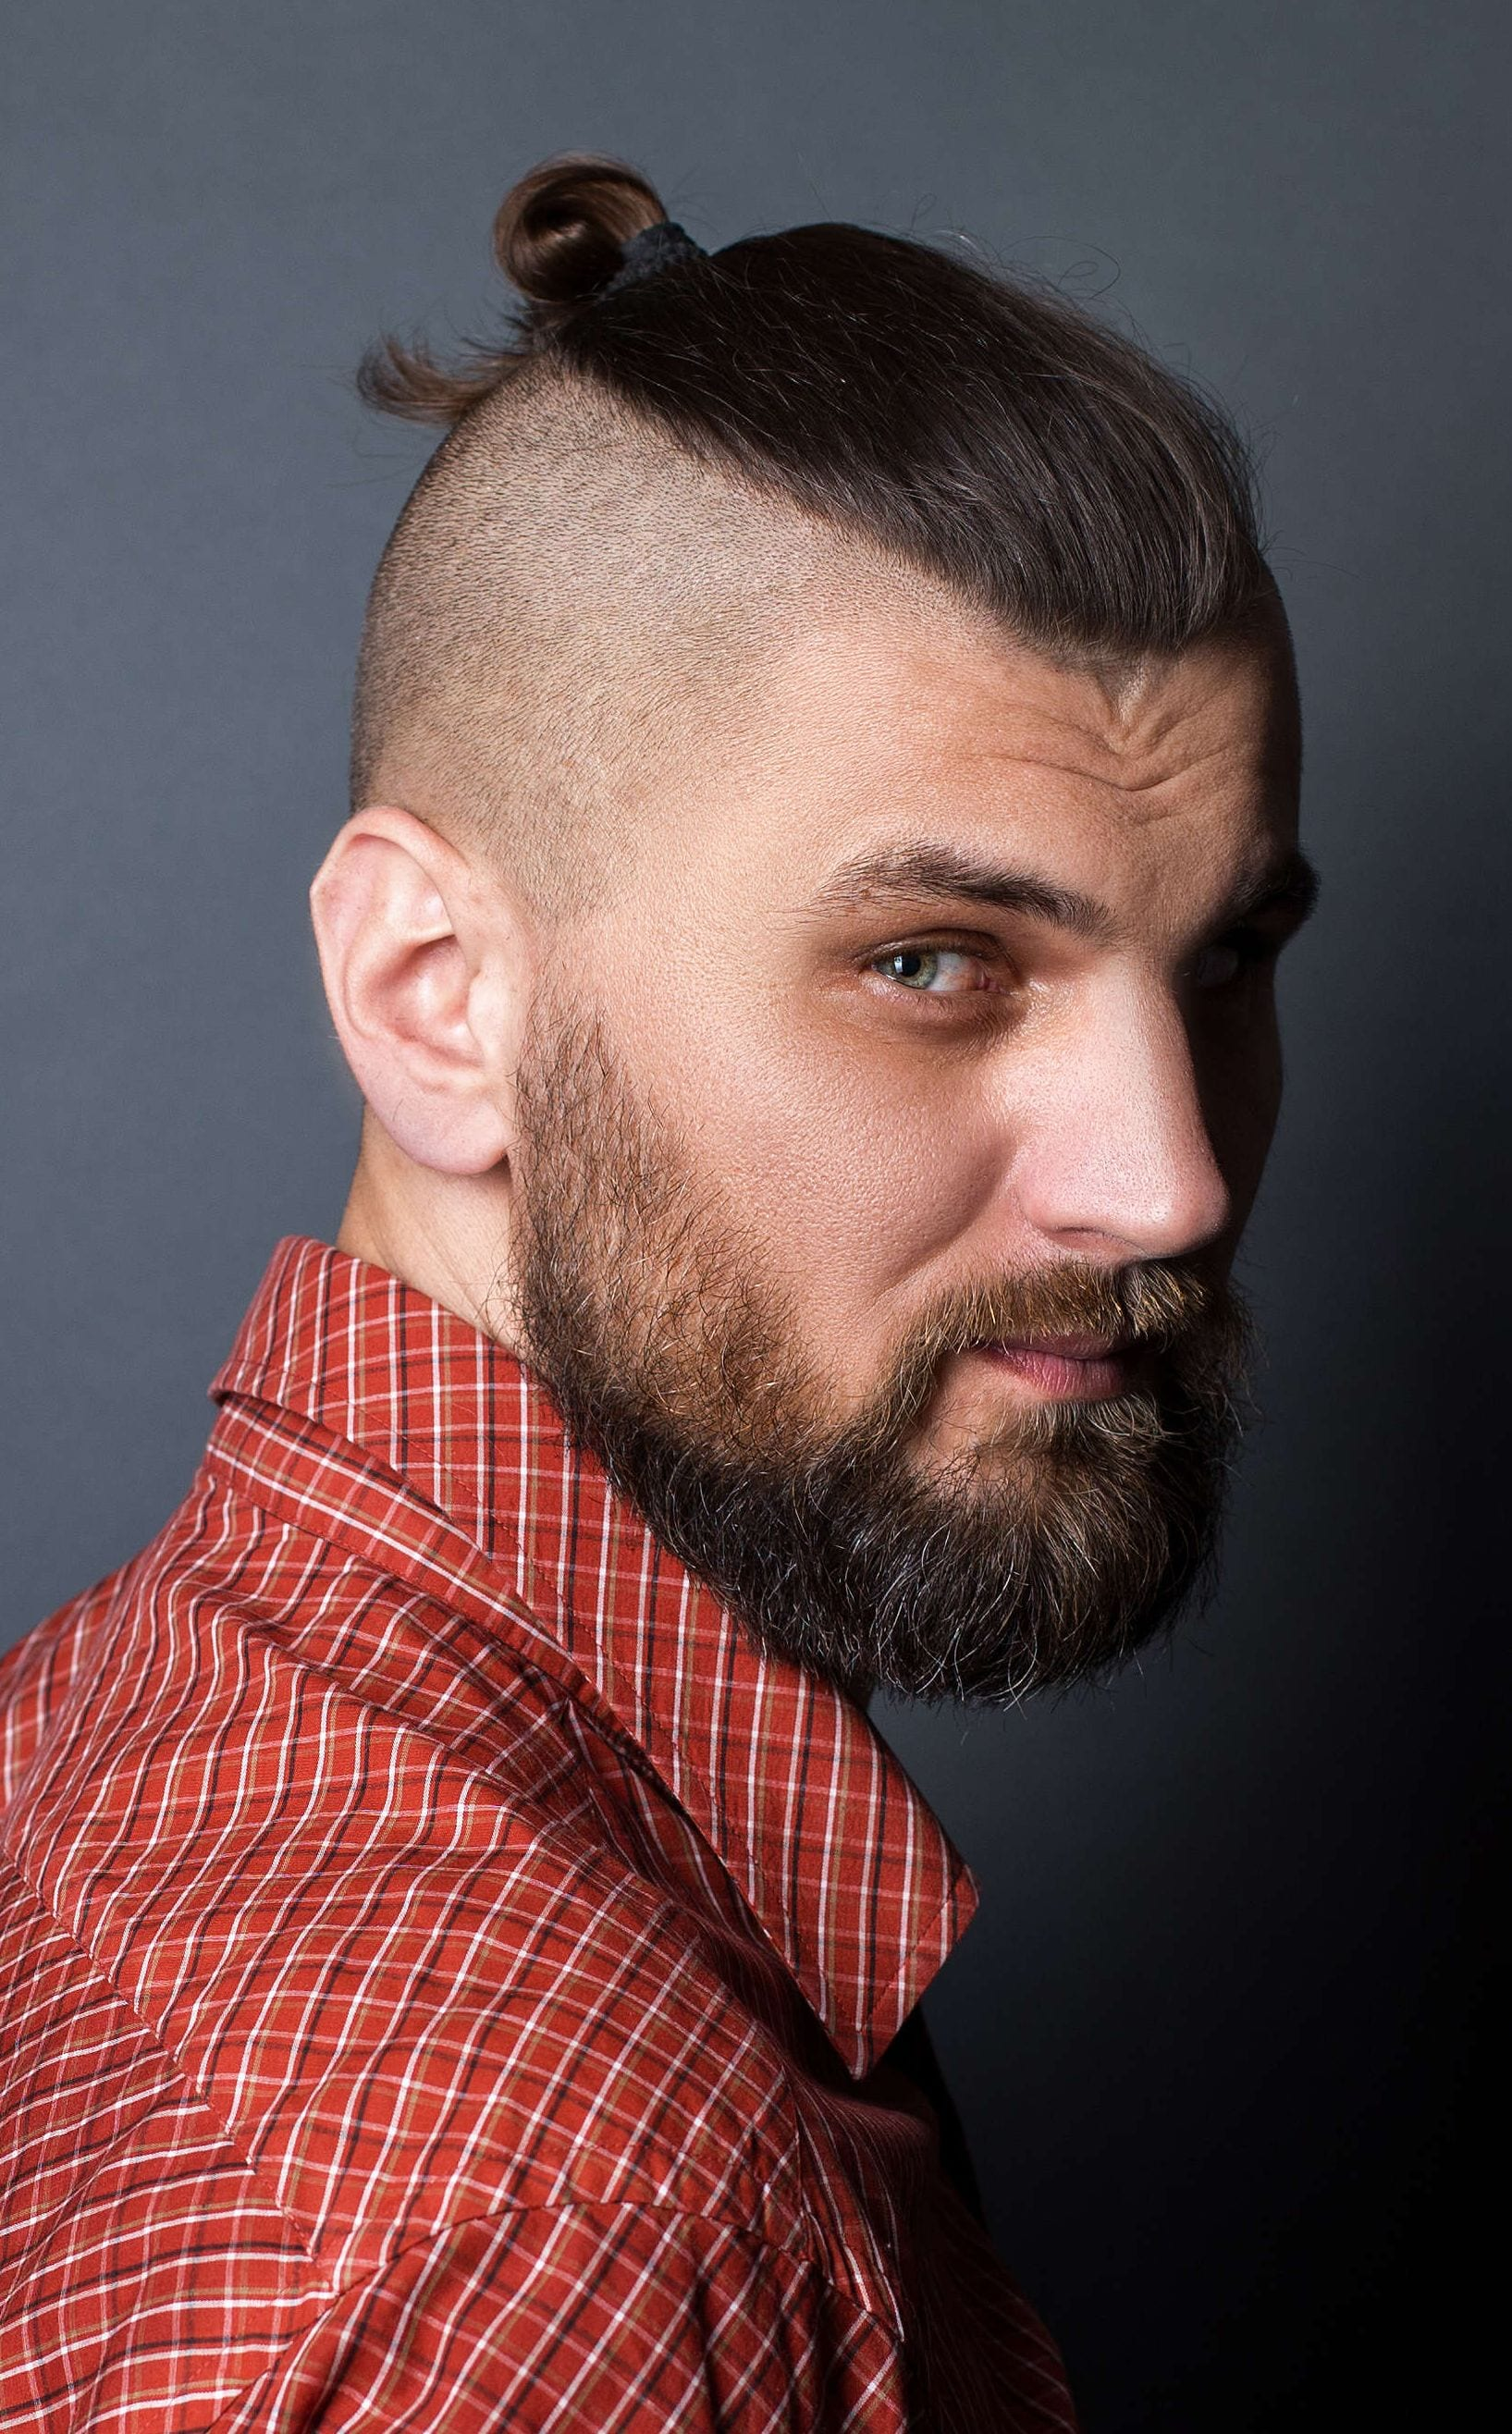 As the name suggests, a top knot is situated on top of your head, usually in the center. The Top Knot Hairstyle Visual Guide For Men 7 Different Styles